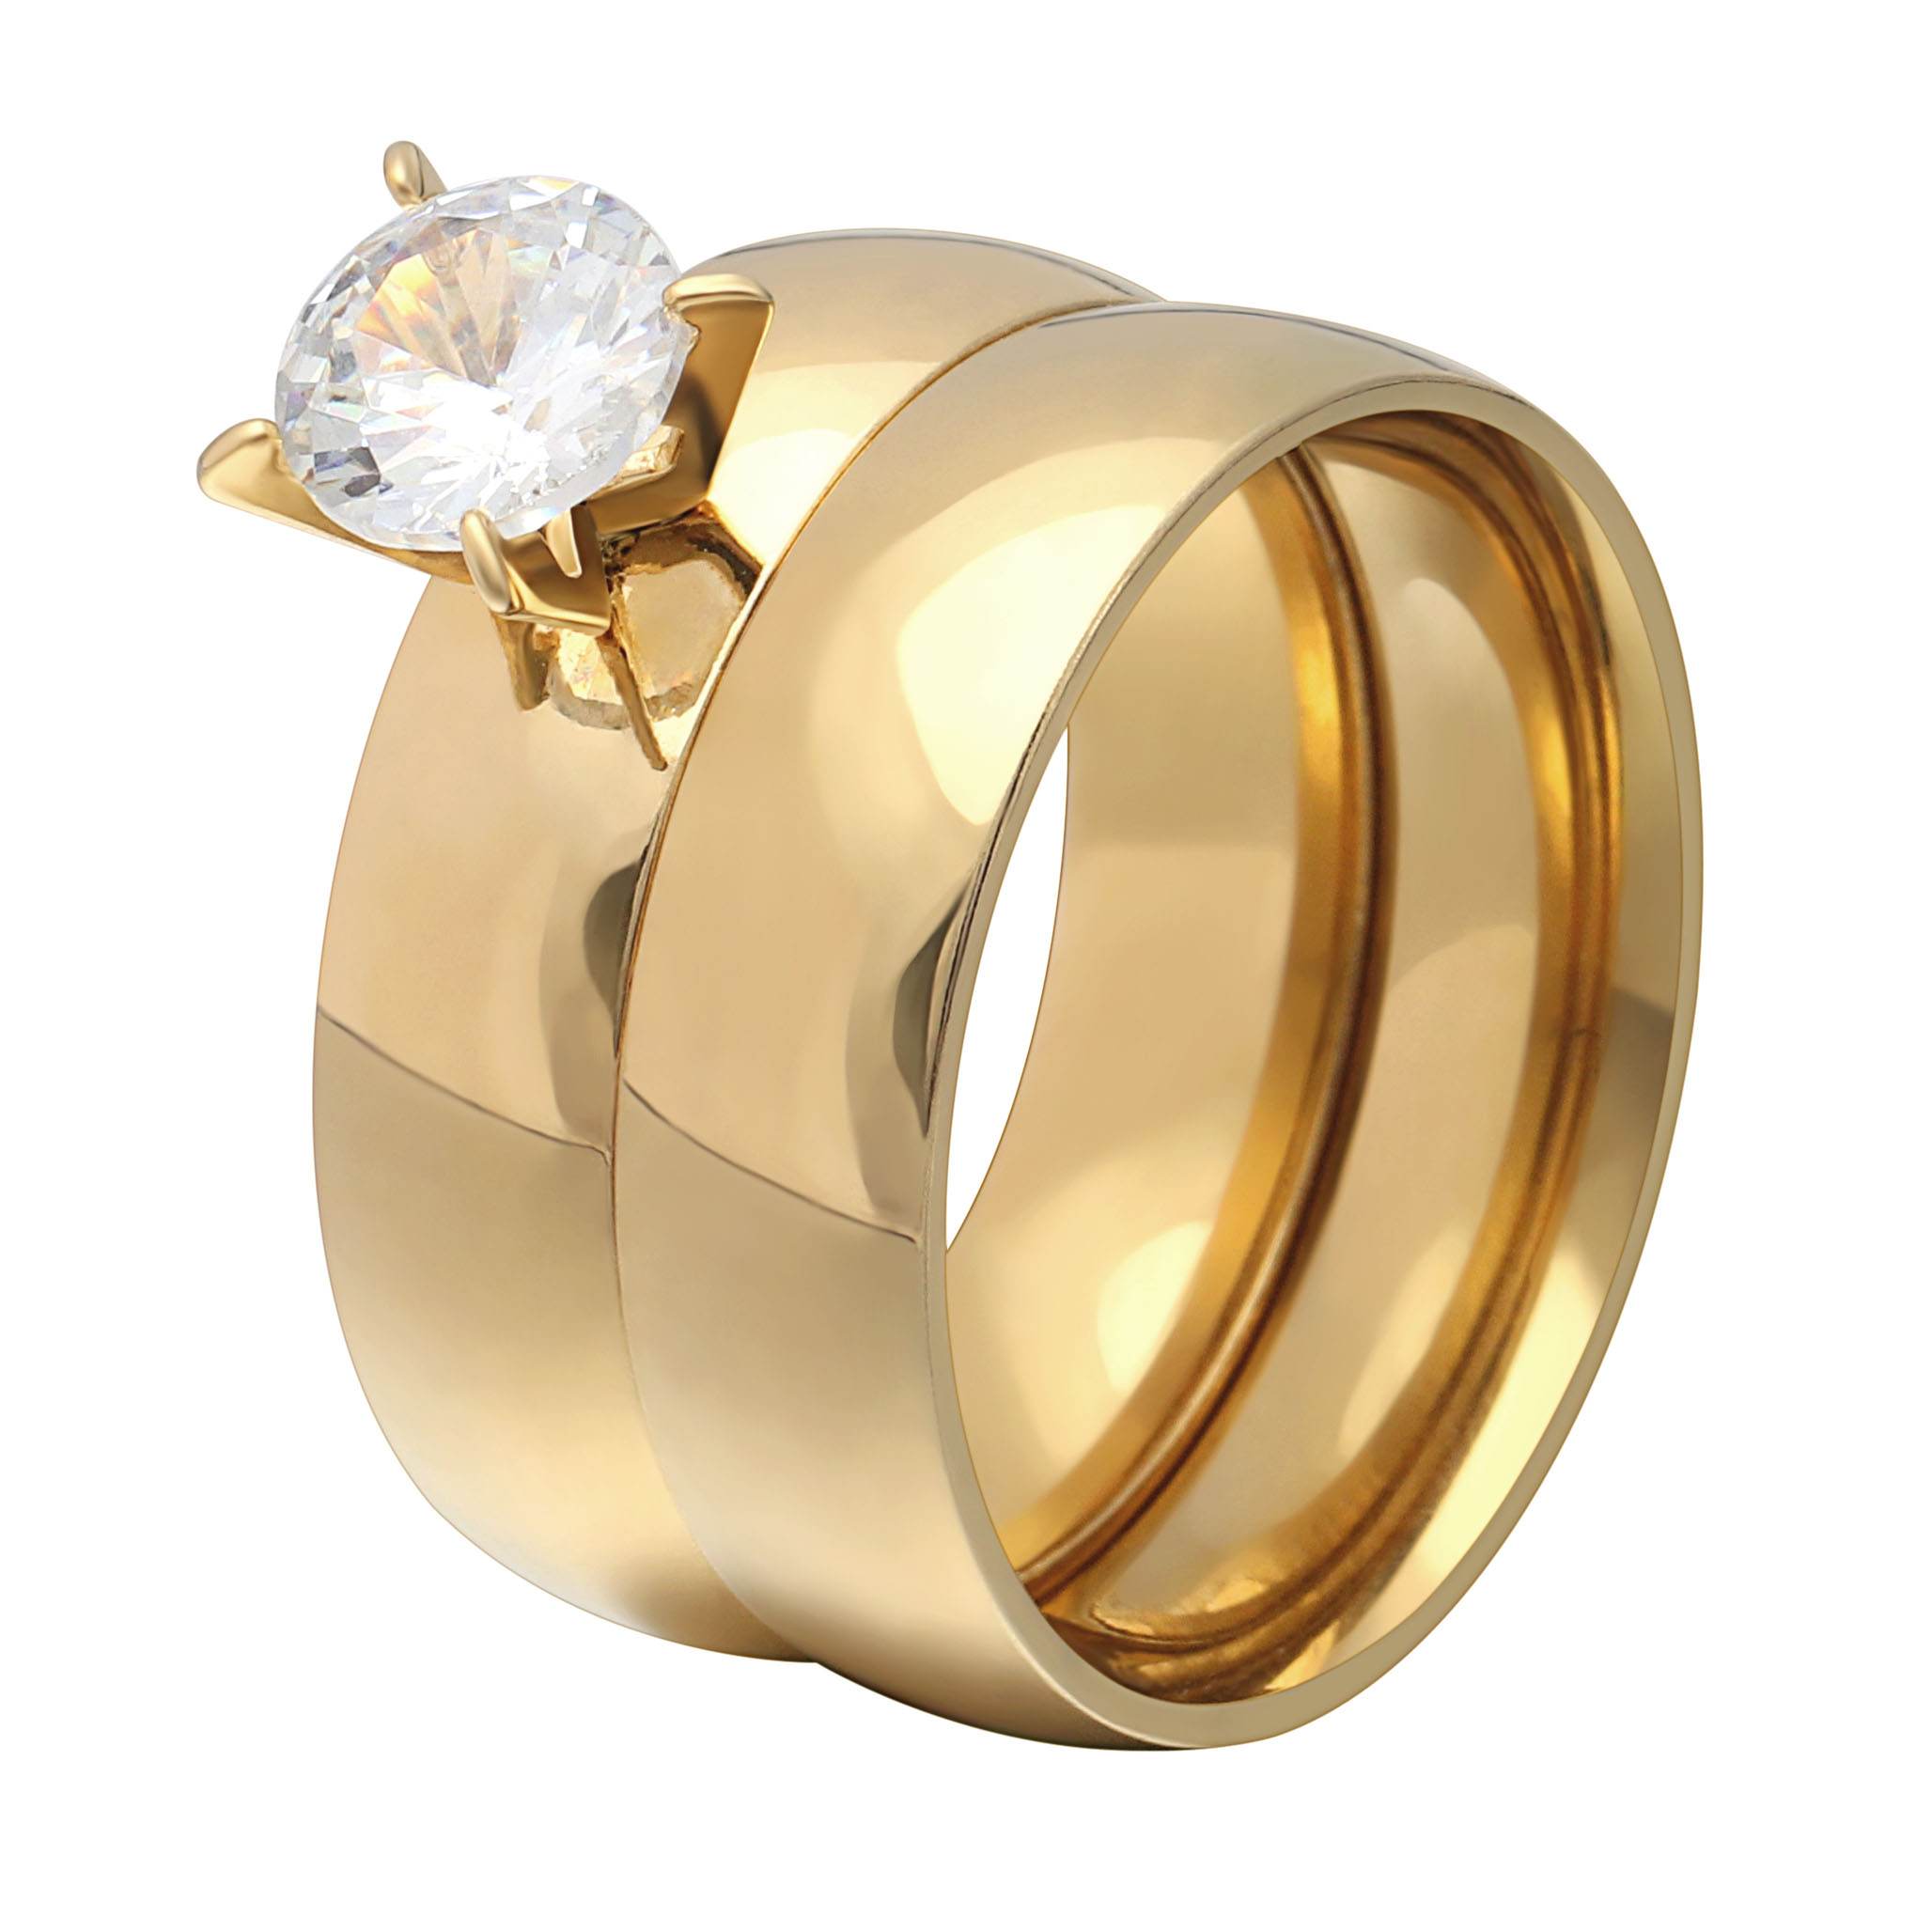 New gold color white 8mm zircon stainless steel anniversary wedding rings for women jewelry